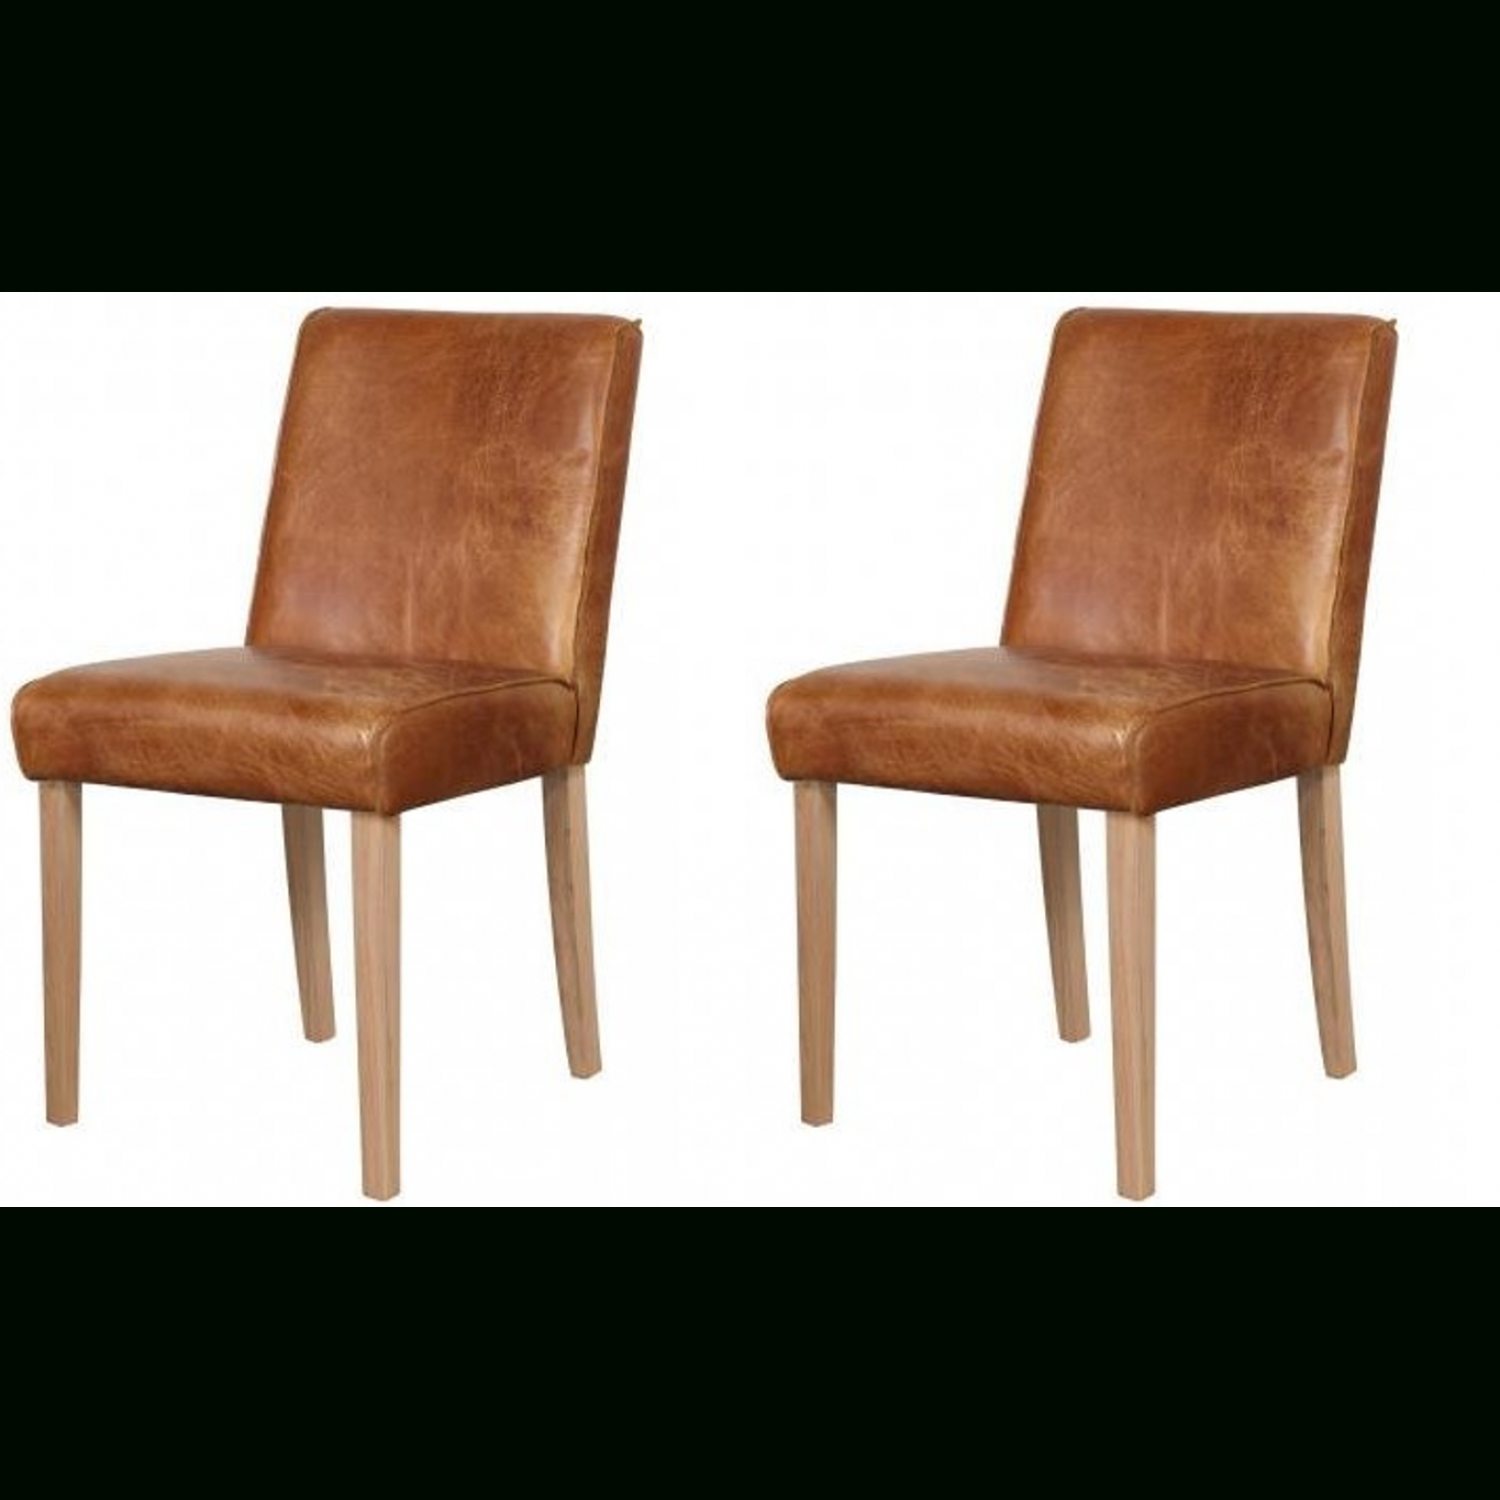 Most Current Carlton Wood Leg Upholstered Dining Chairs Inside Additions Oak Furniture Brown Barton Aniline Leather Dining Chair Pair (View 16 of 20)